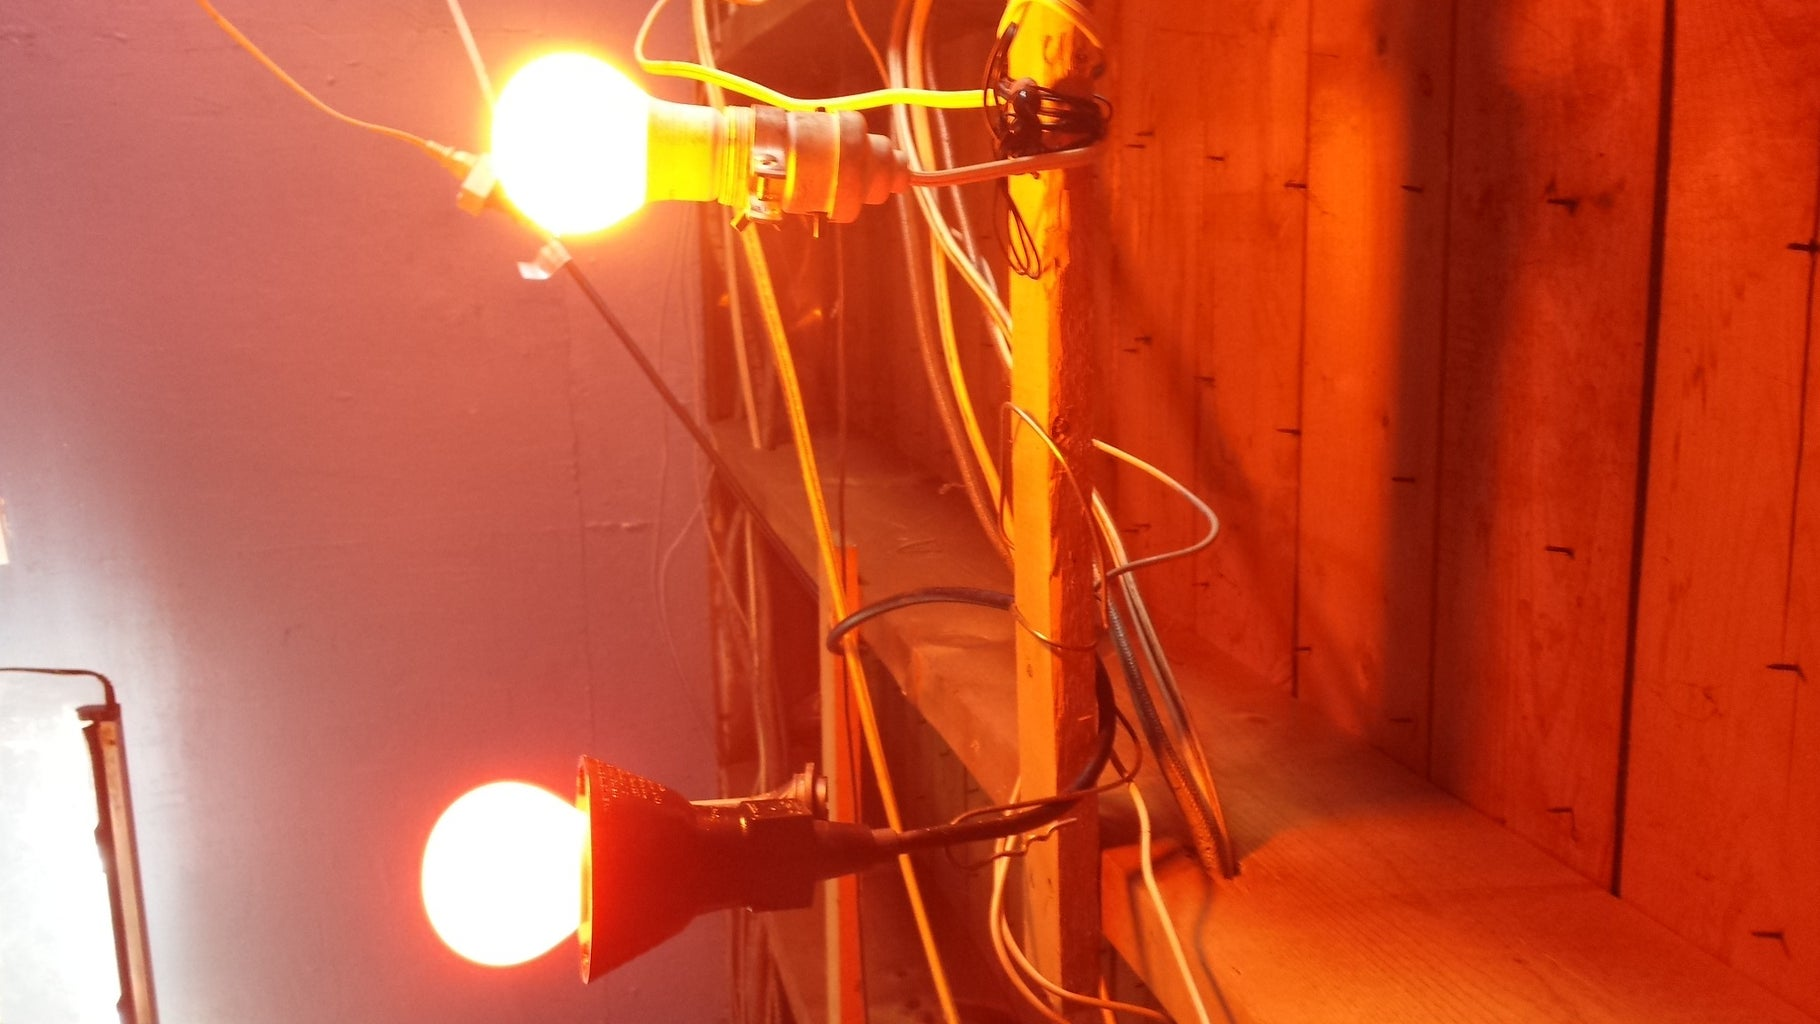 Very Important Safety With High Voltage and Chemicals Involved.